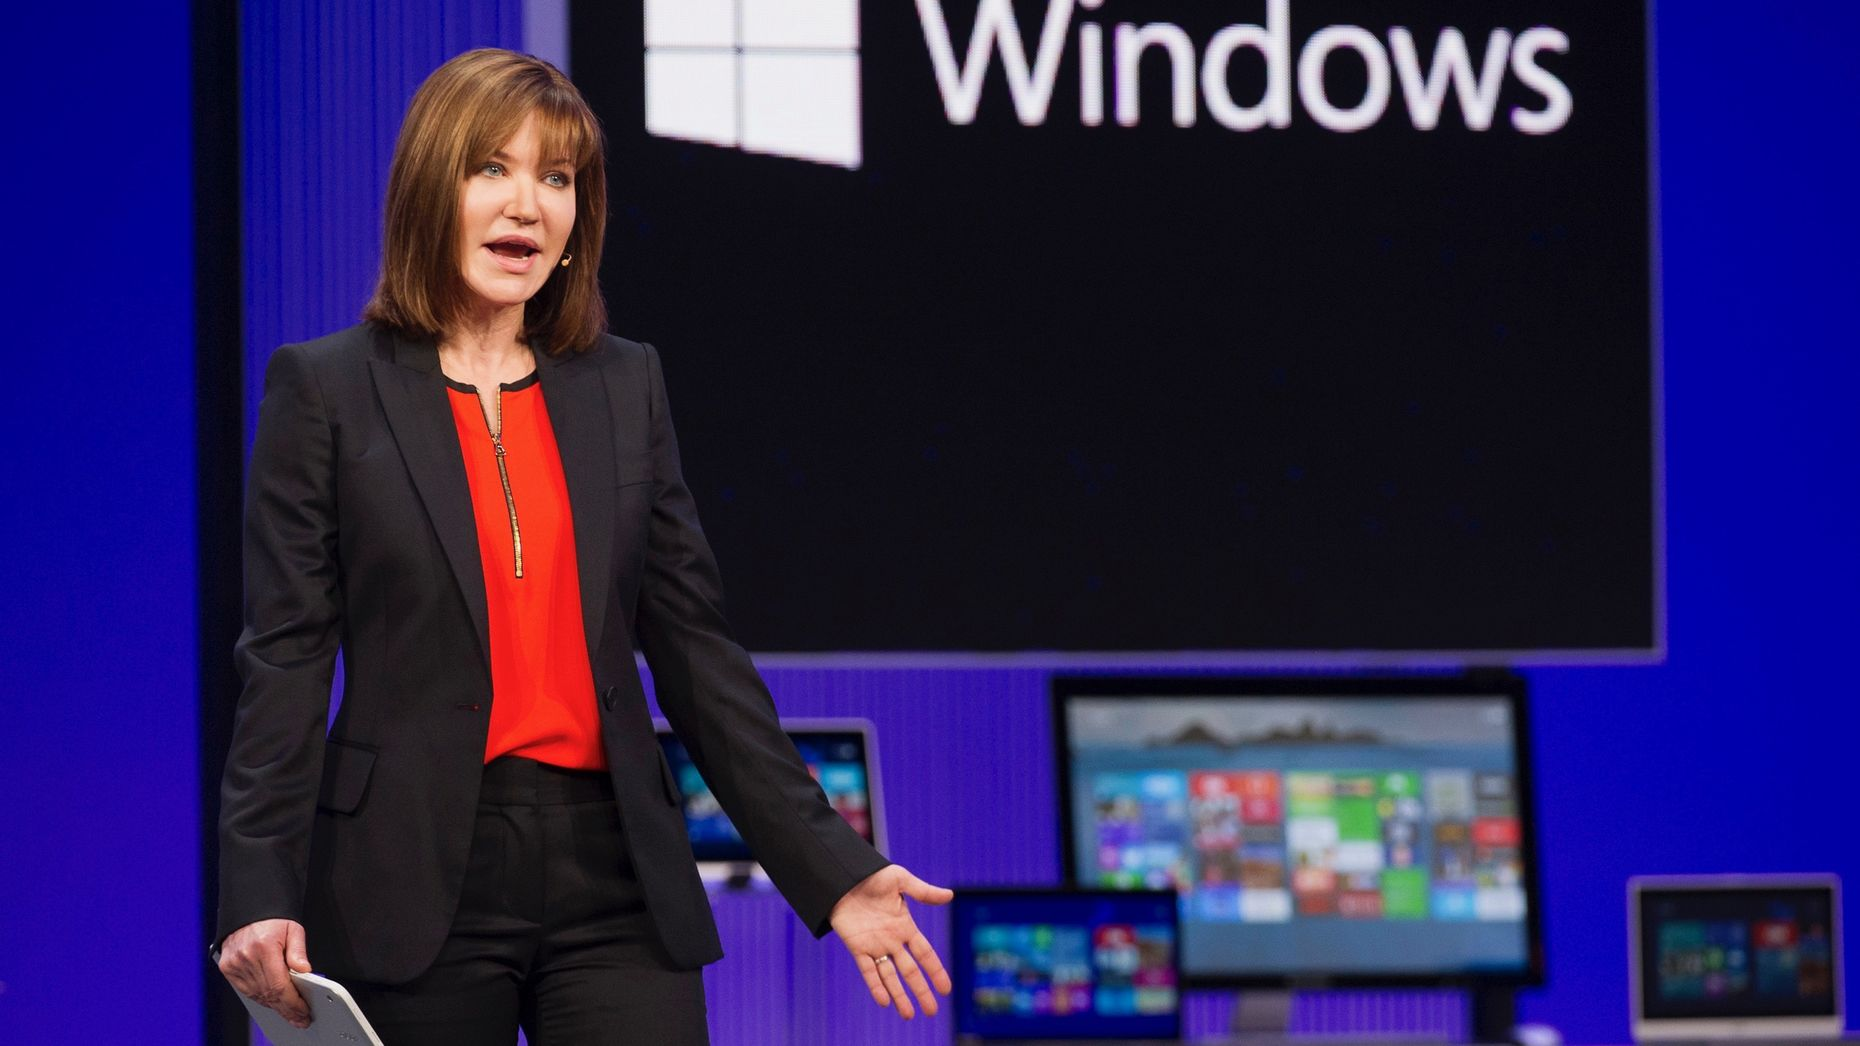 Microsoft executive Julie Larson-Green at a Microsoft developers conference in 2013. Photo by Bloomberg.